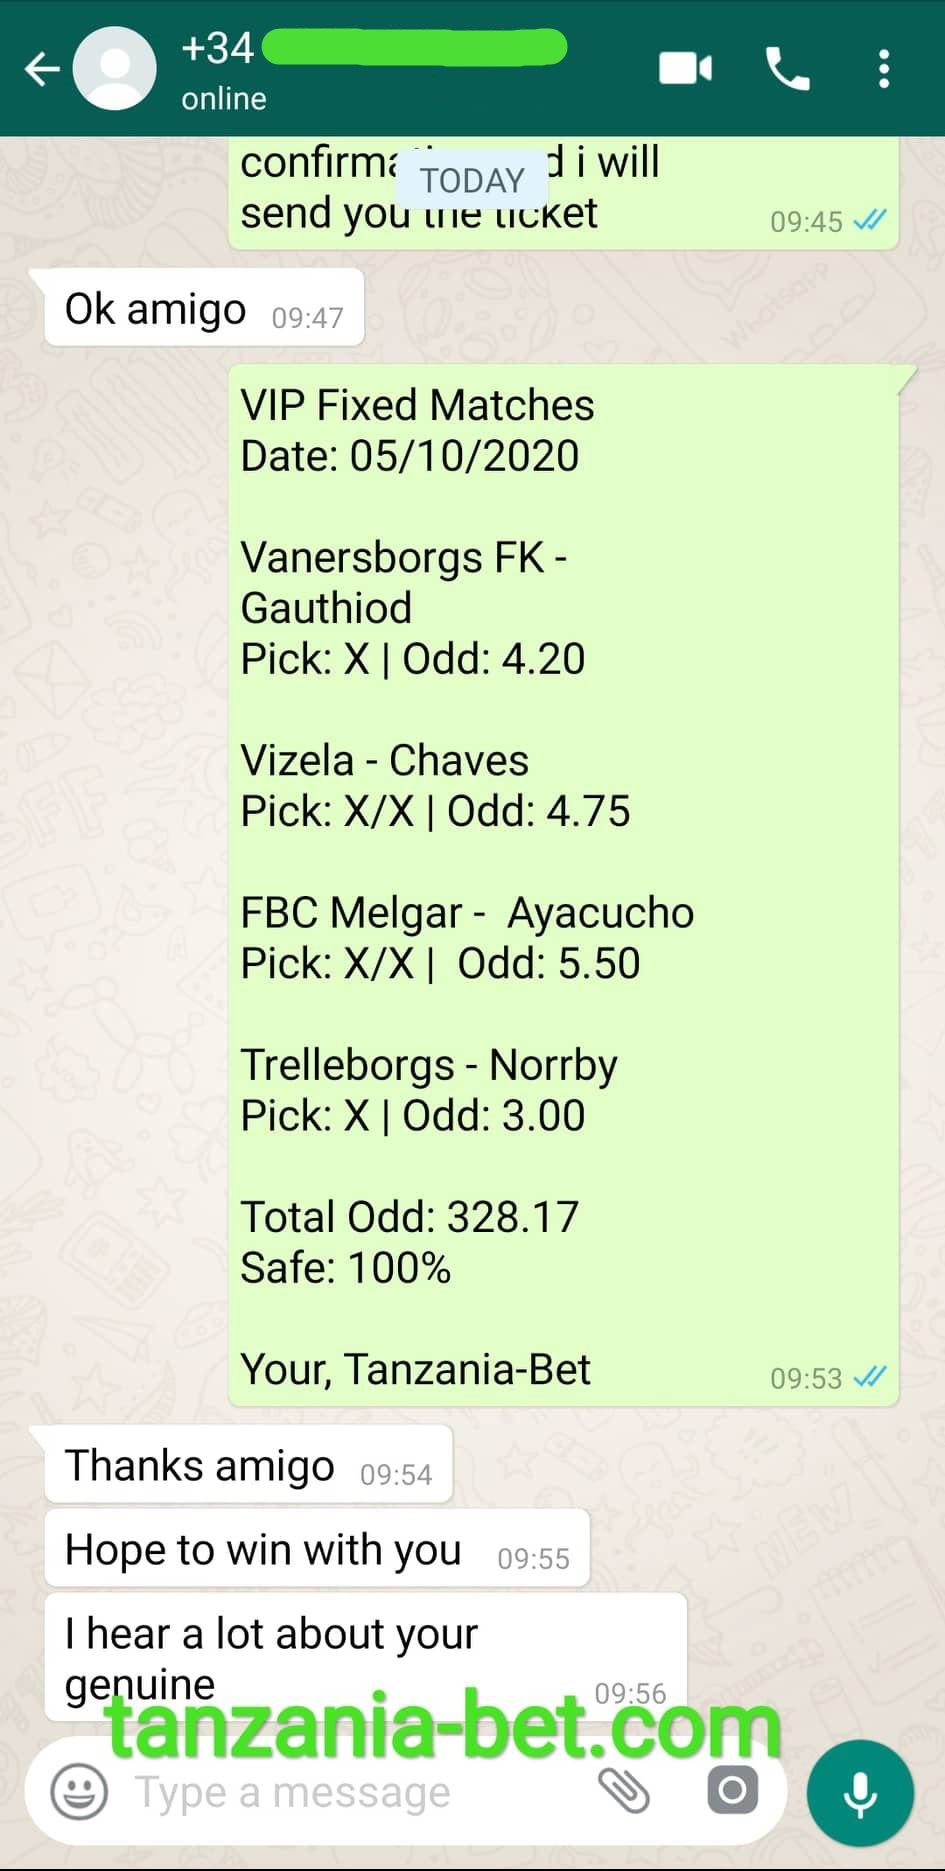 best soccer odds in africa